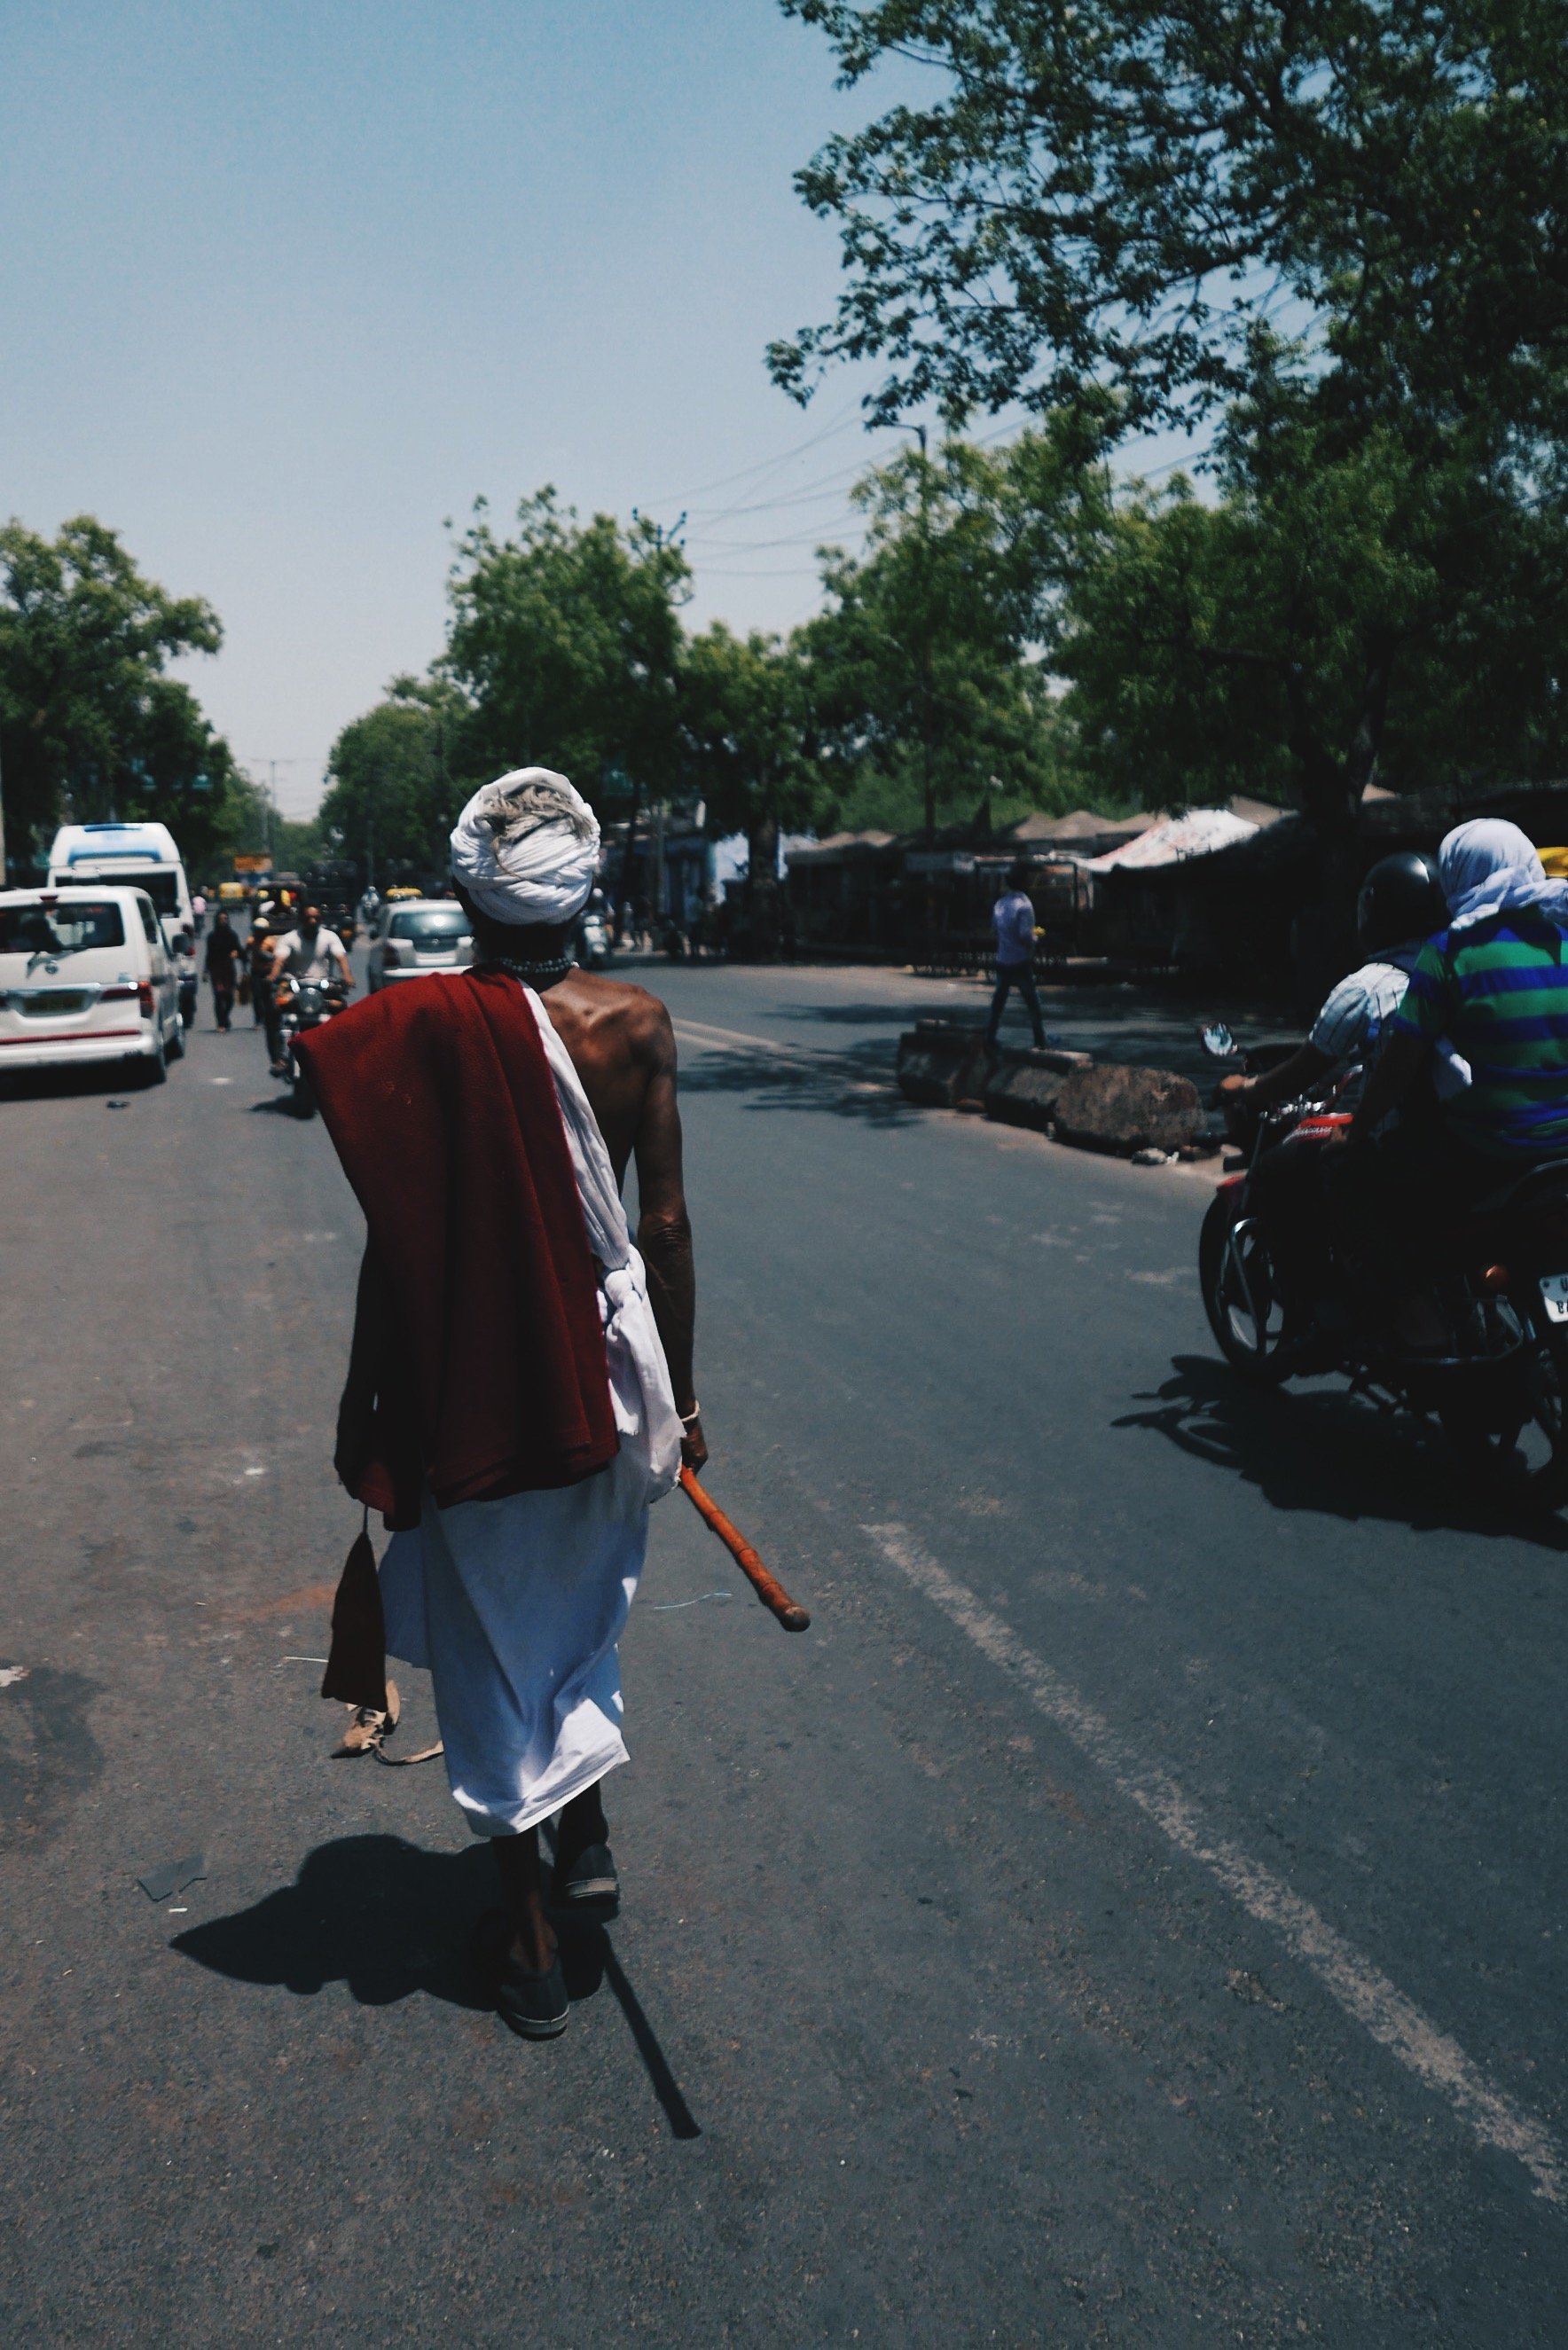 People of India pt. 3